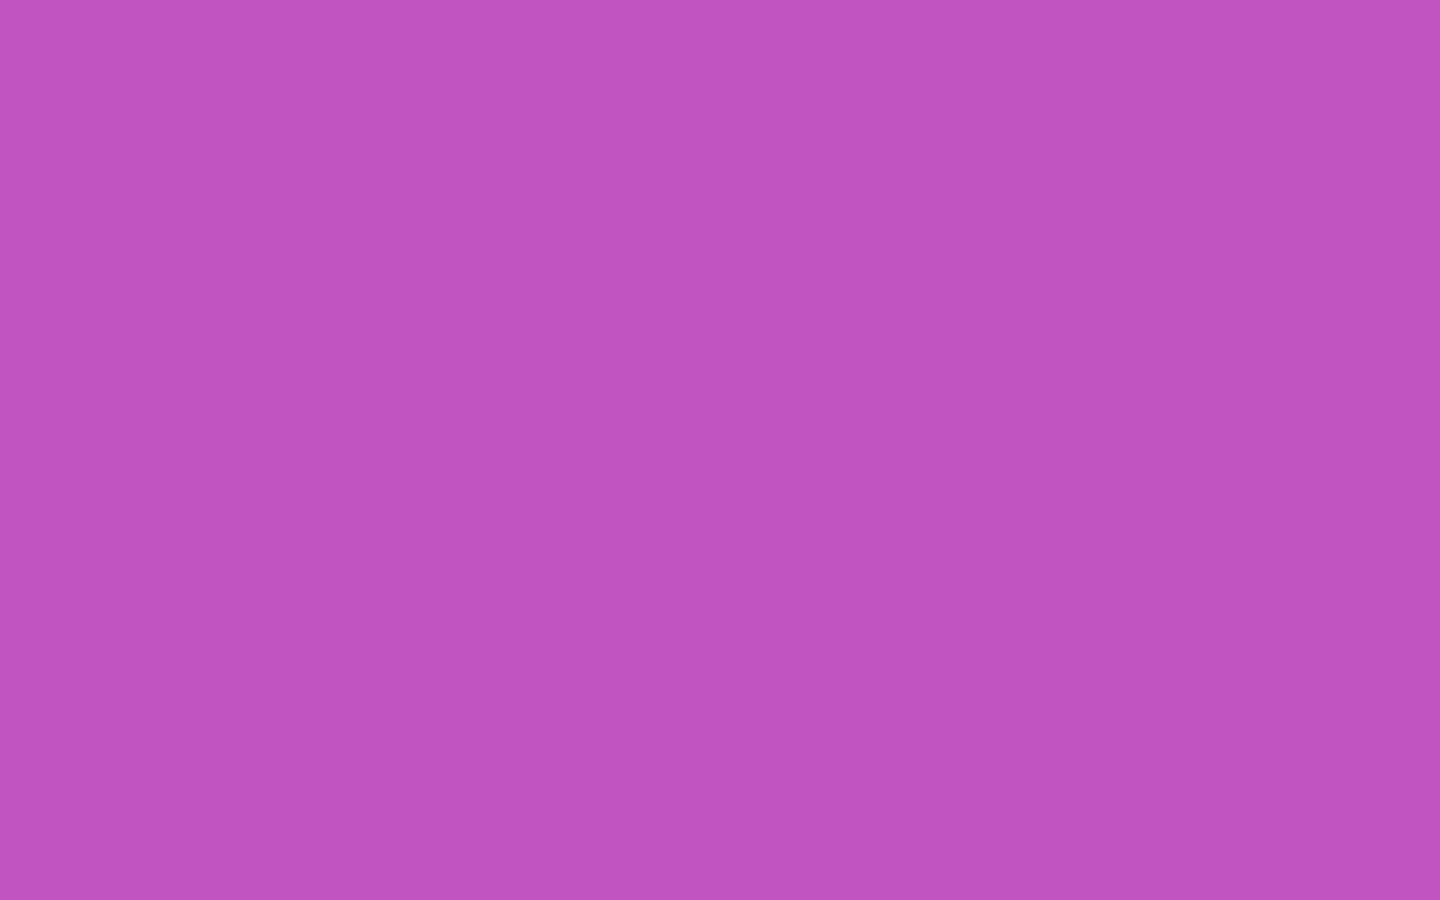 1440x900 Deep Fuchsia Solid Color Background